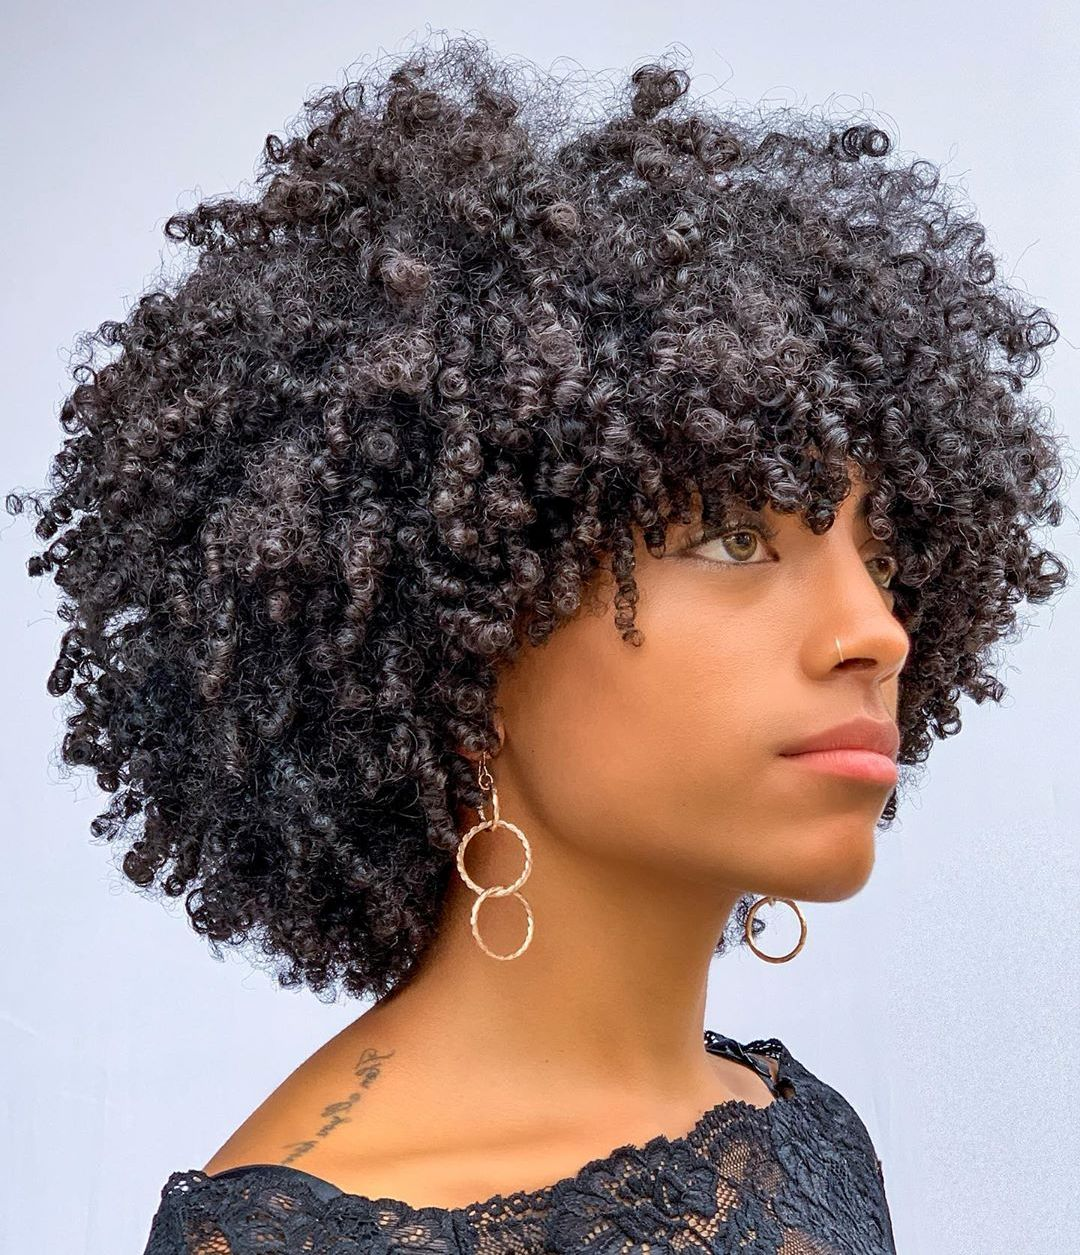 Natural Hairstyle for Short Curly Hair